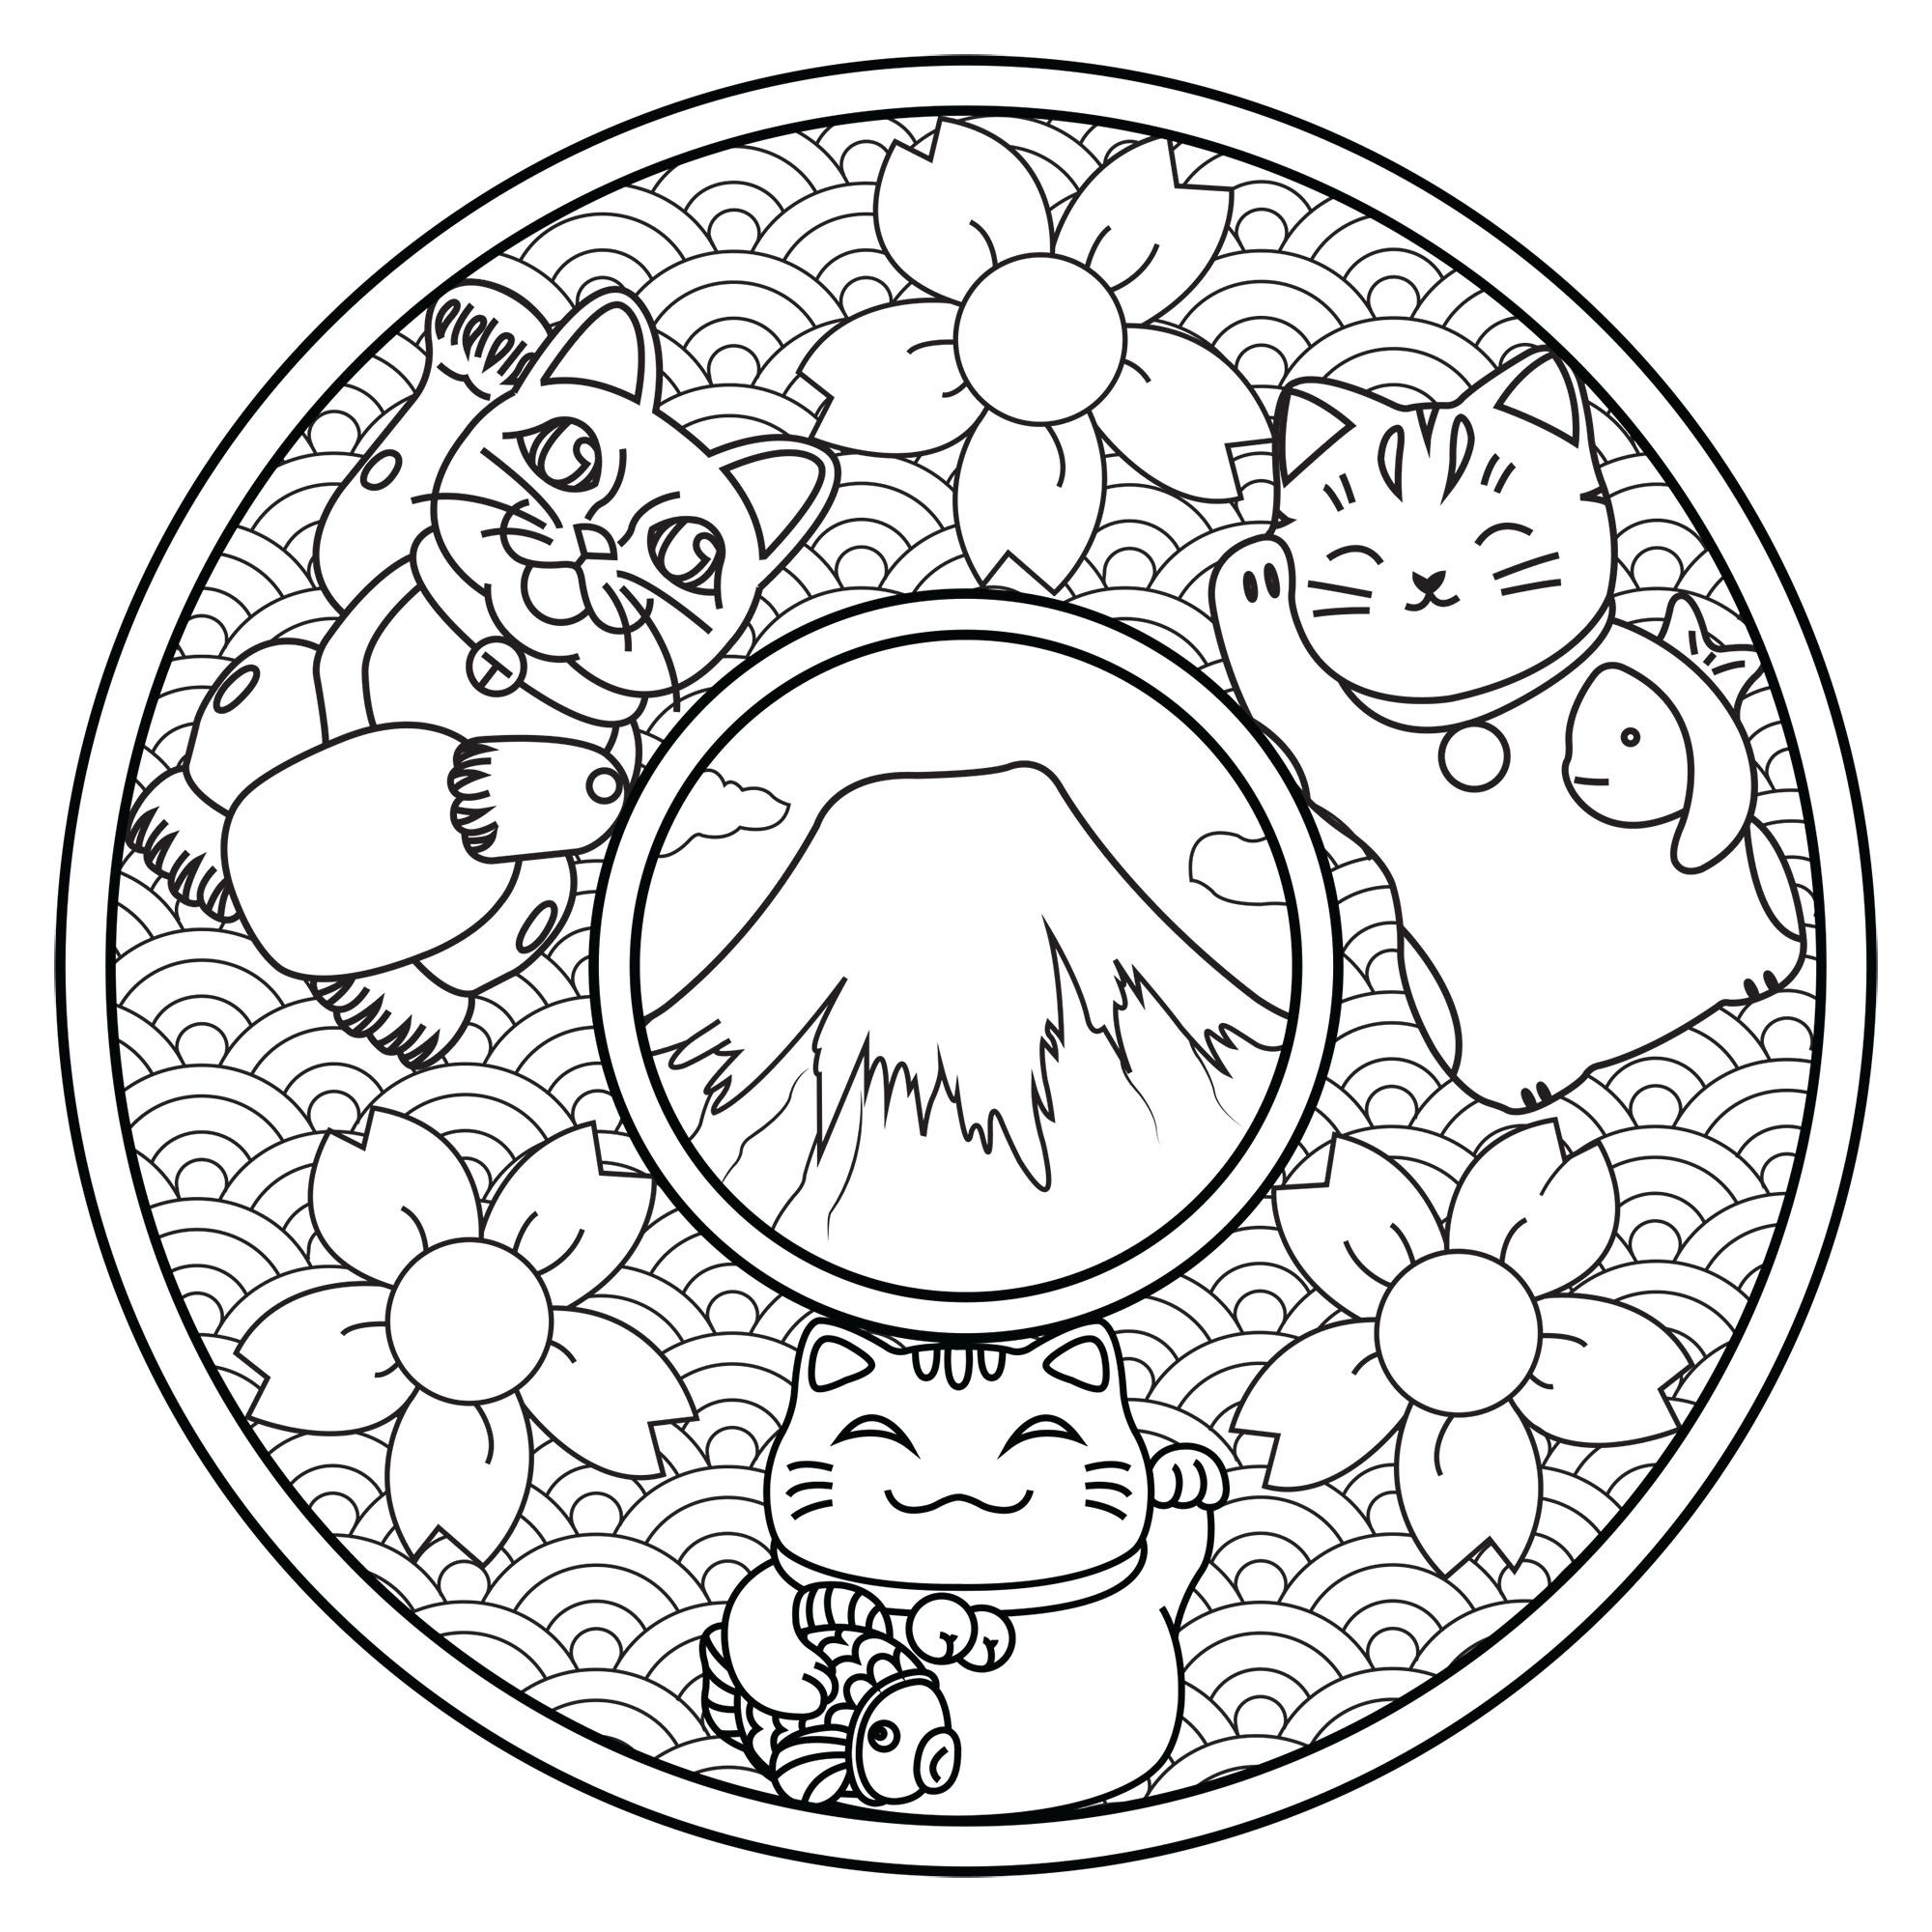 Color These Three Cute Cats On This Mandala Inspired By